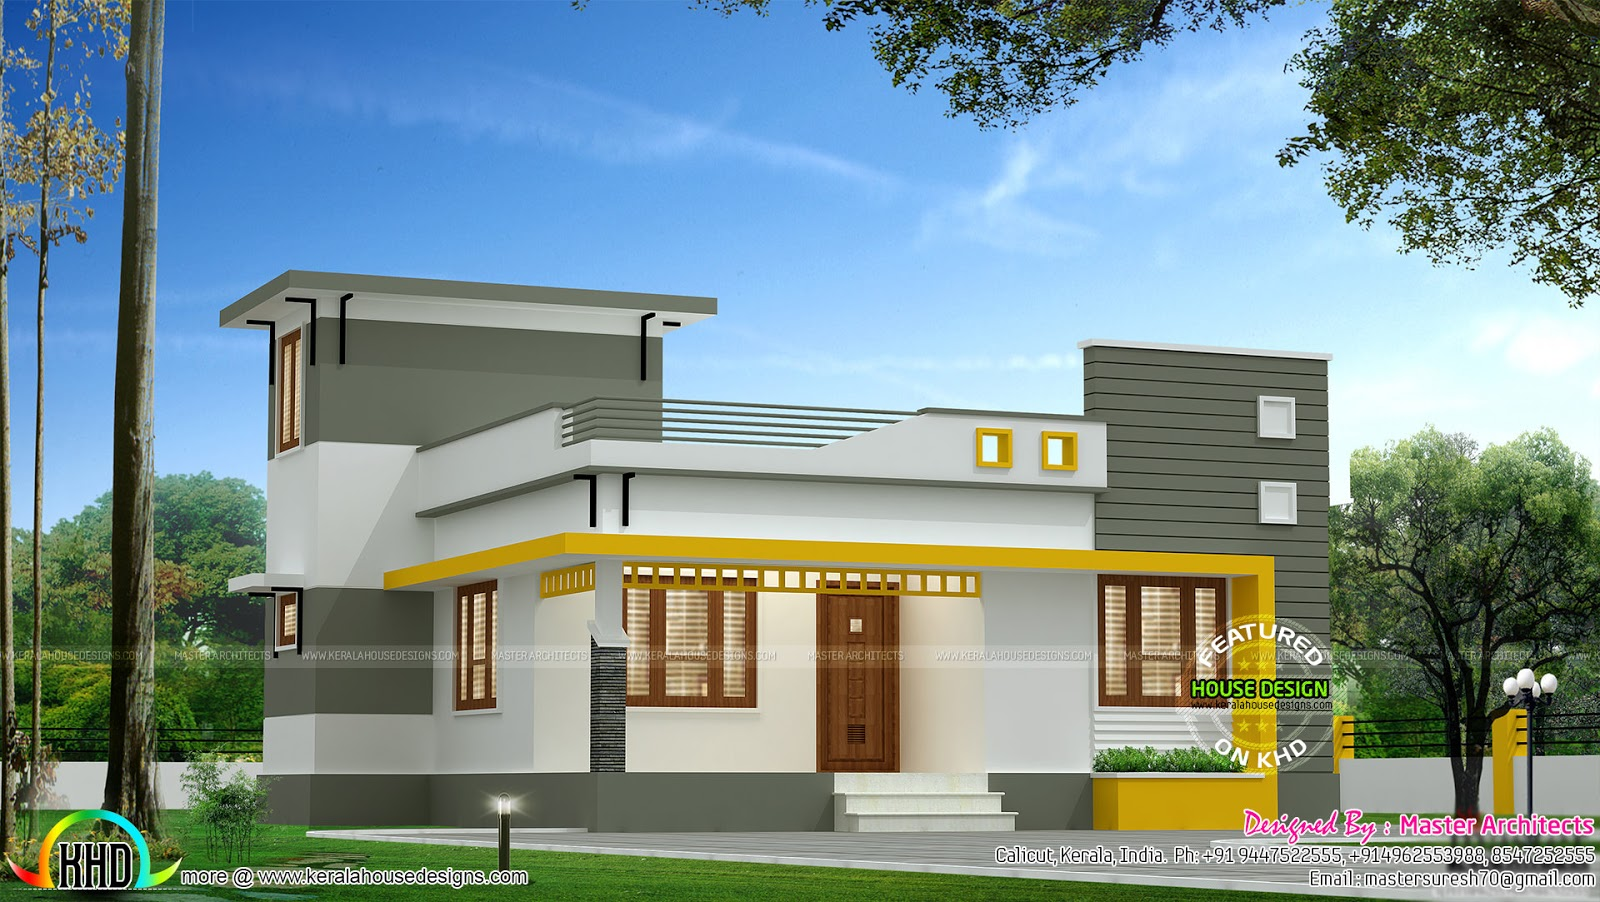 3 bedroom single floor modern architecture home kerala for House plans images gallery